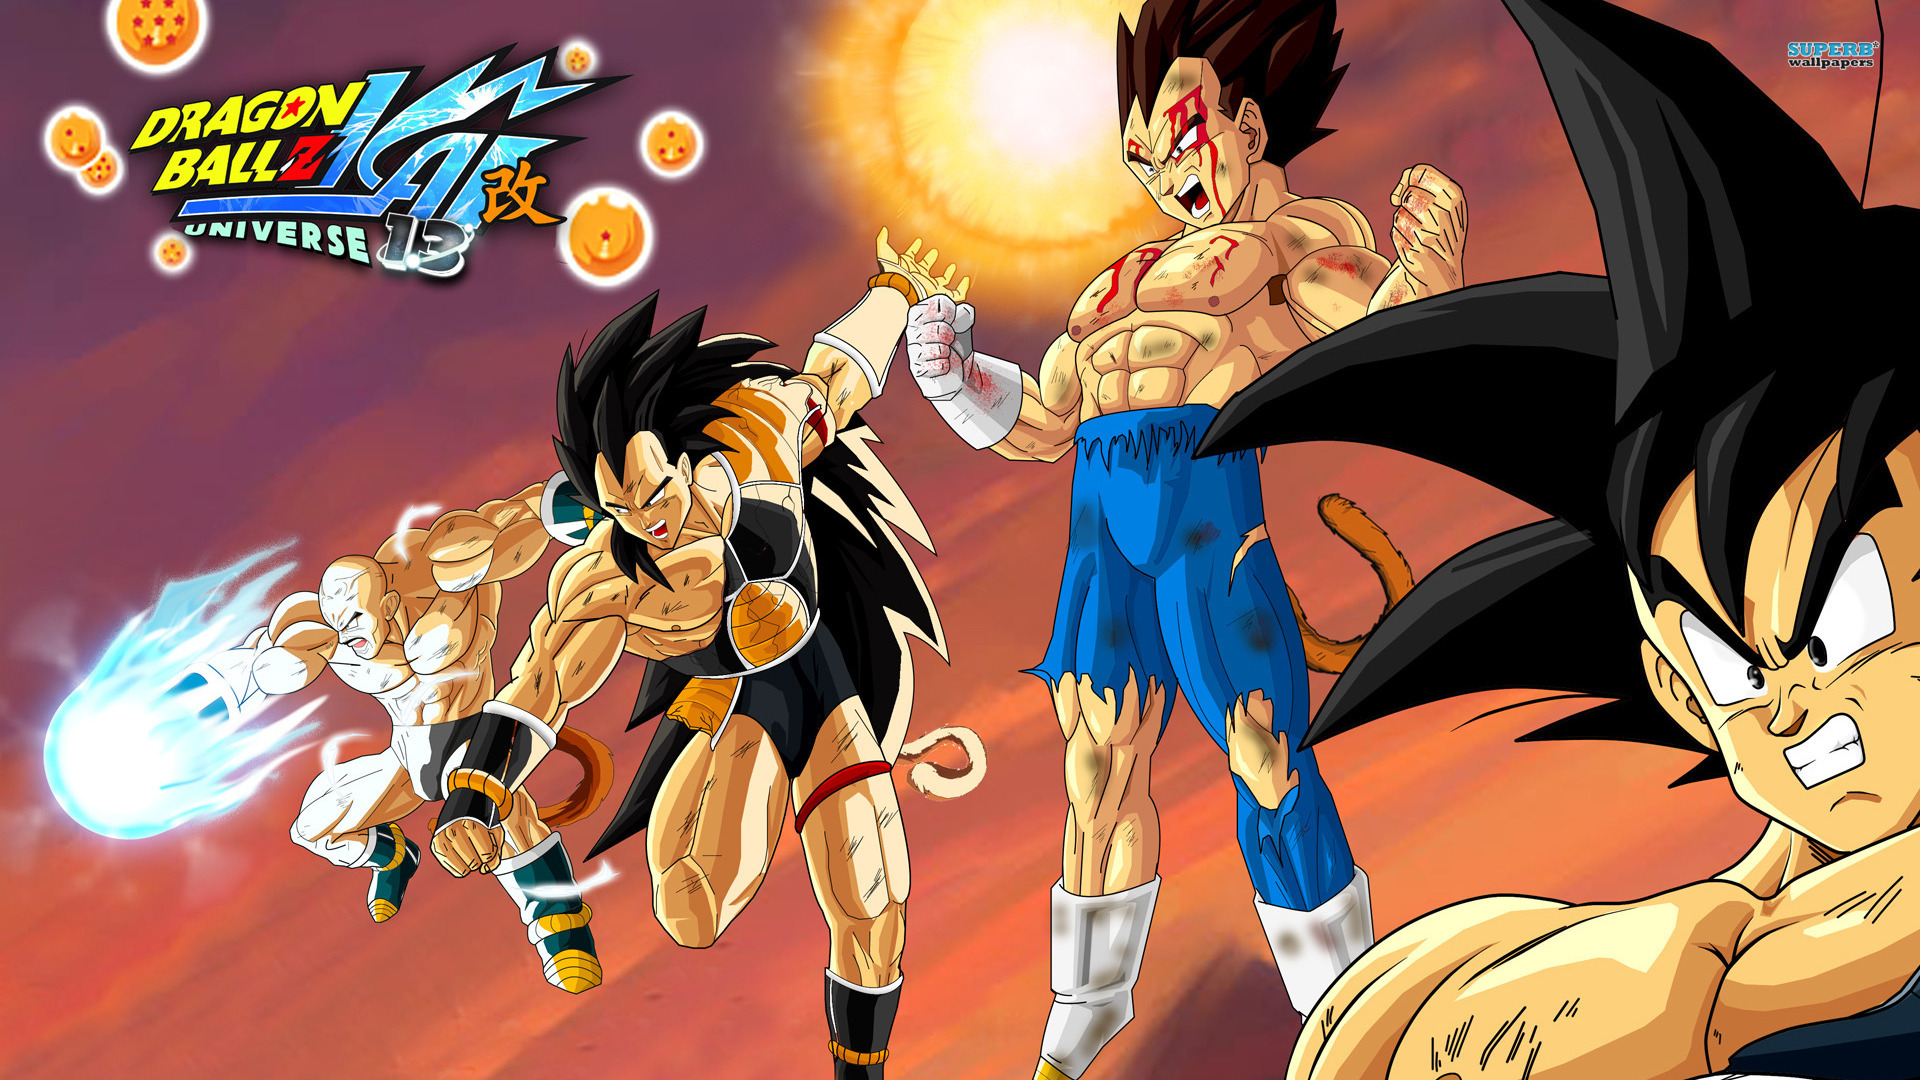 Dragon Ball Z Vegeta Wallpapers High Quality Download Free